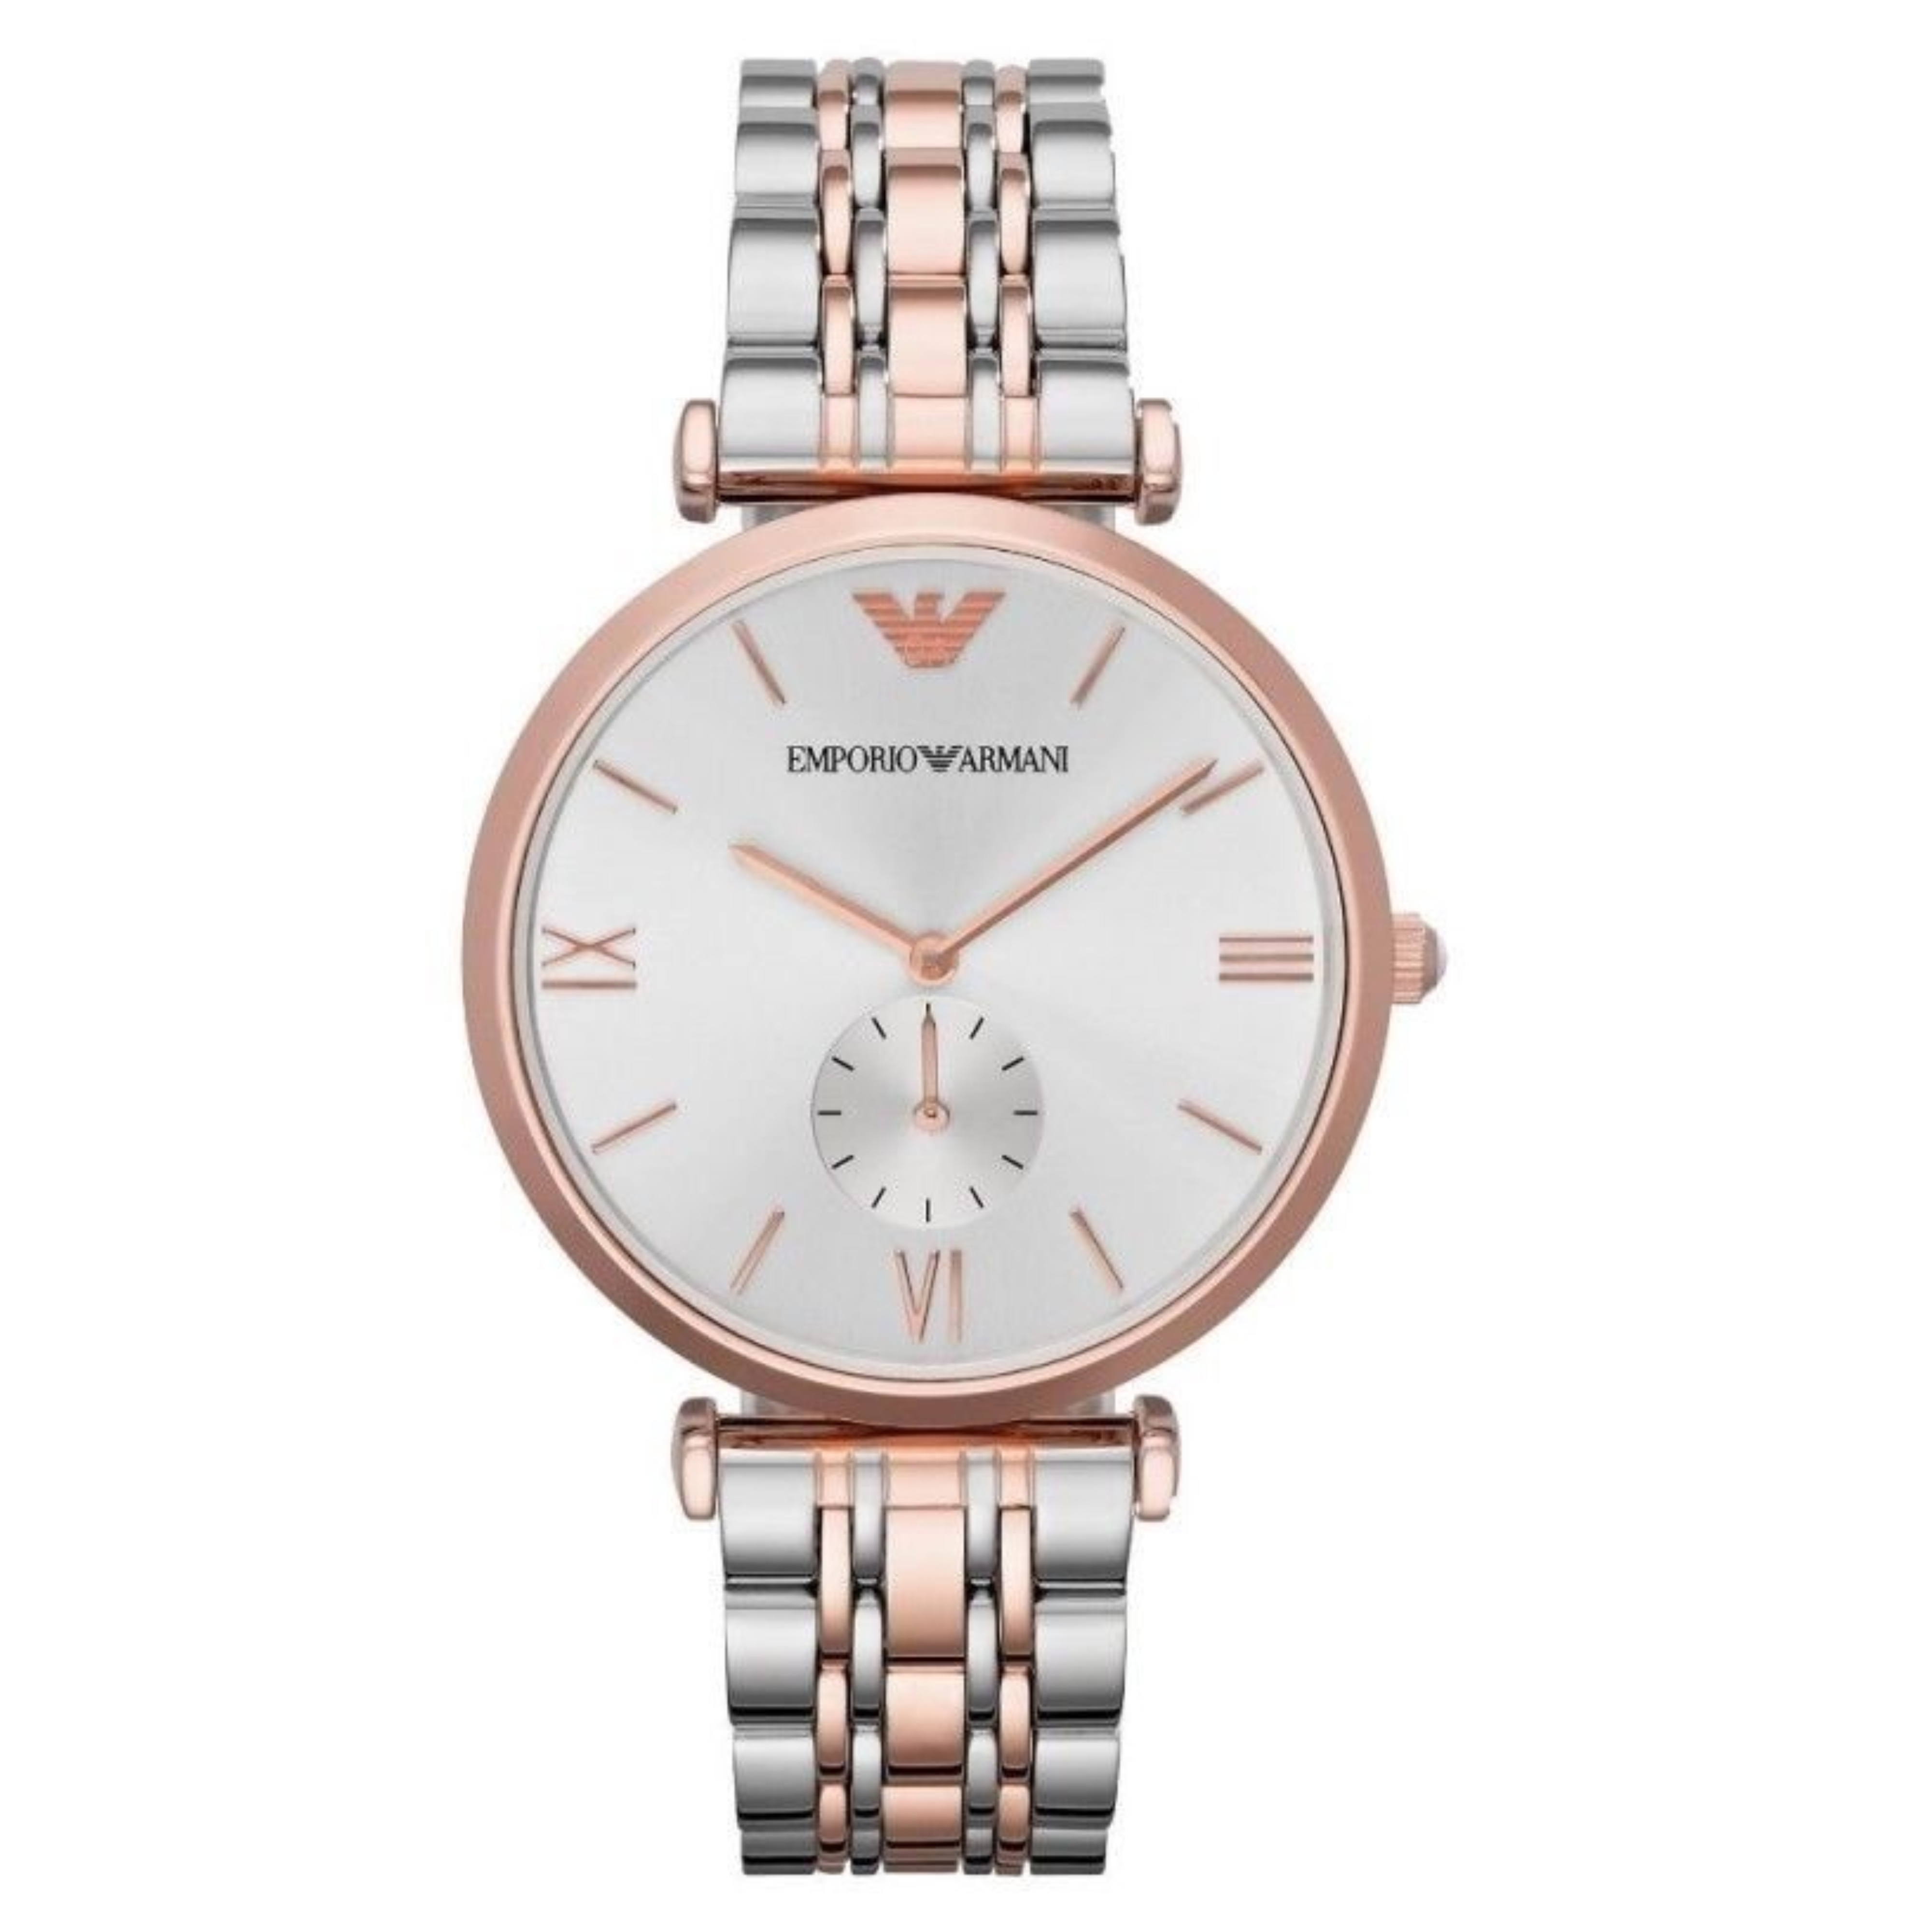 Emporio Armani Men's Watch|Silver Dial|Stainless Steel Rose Gold Bracelet|AR1677